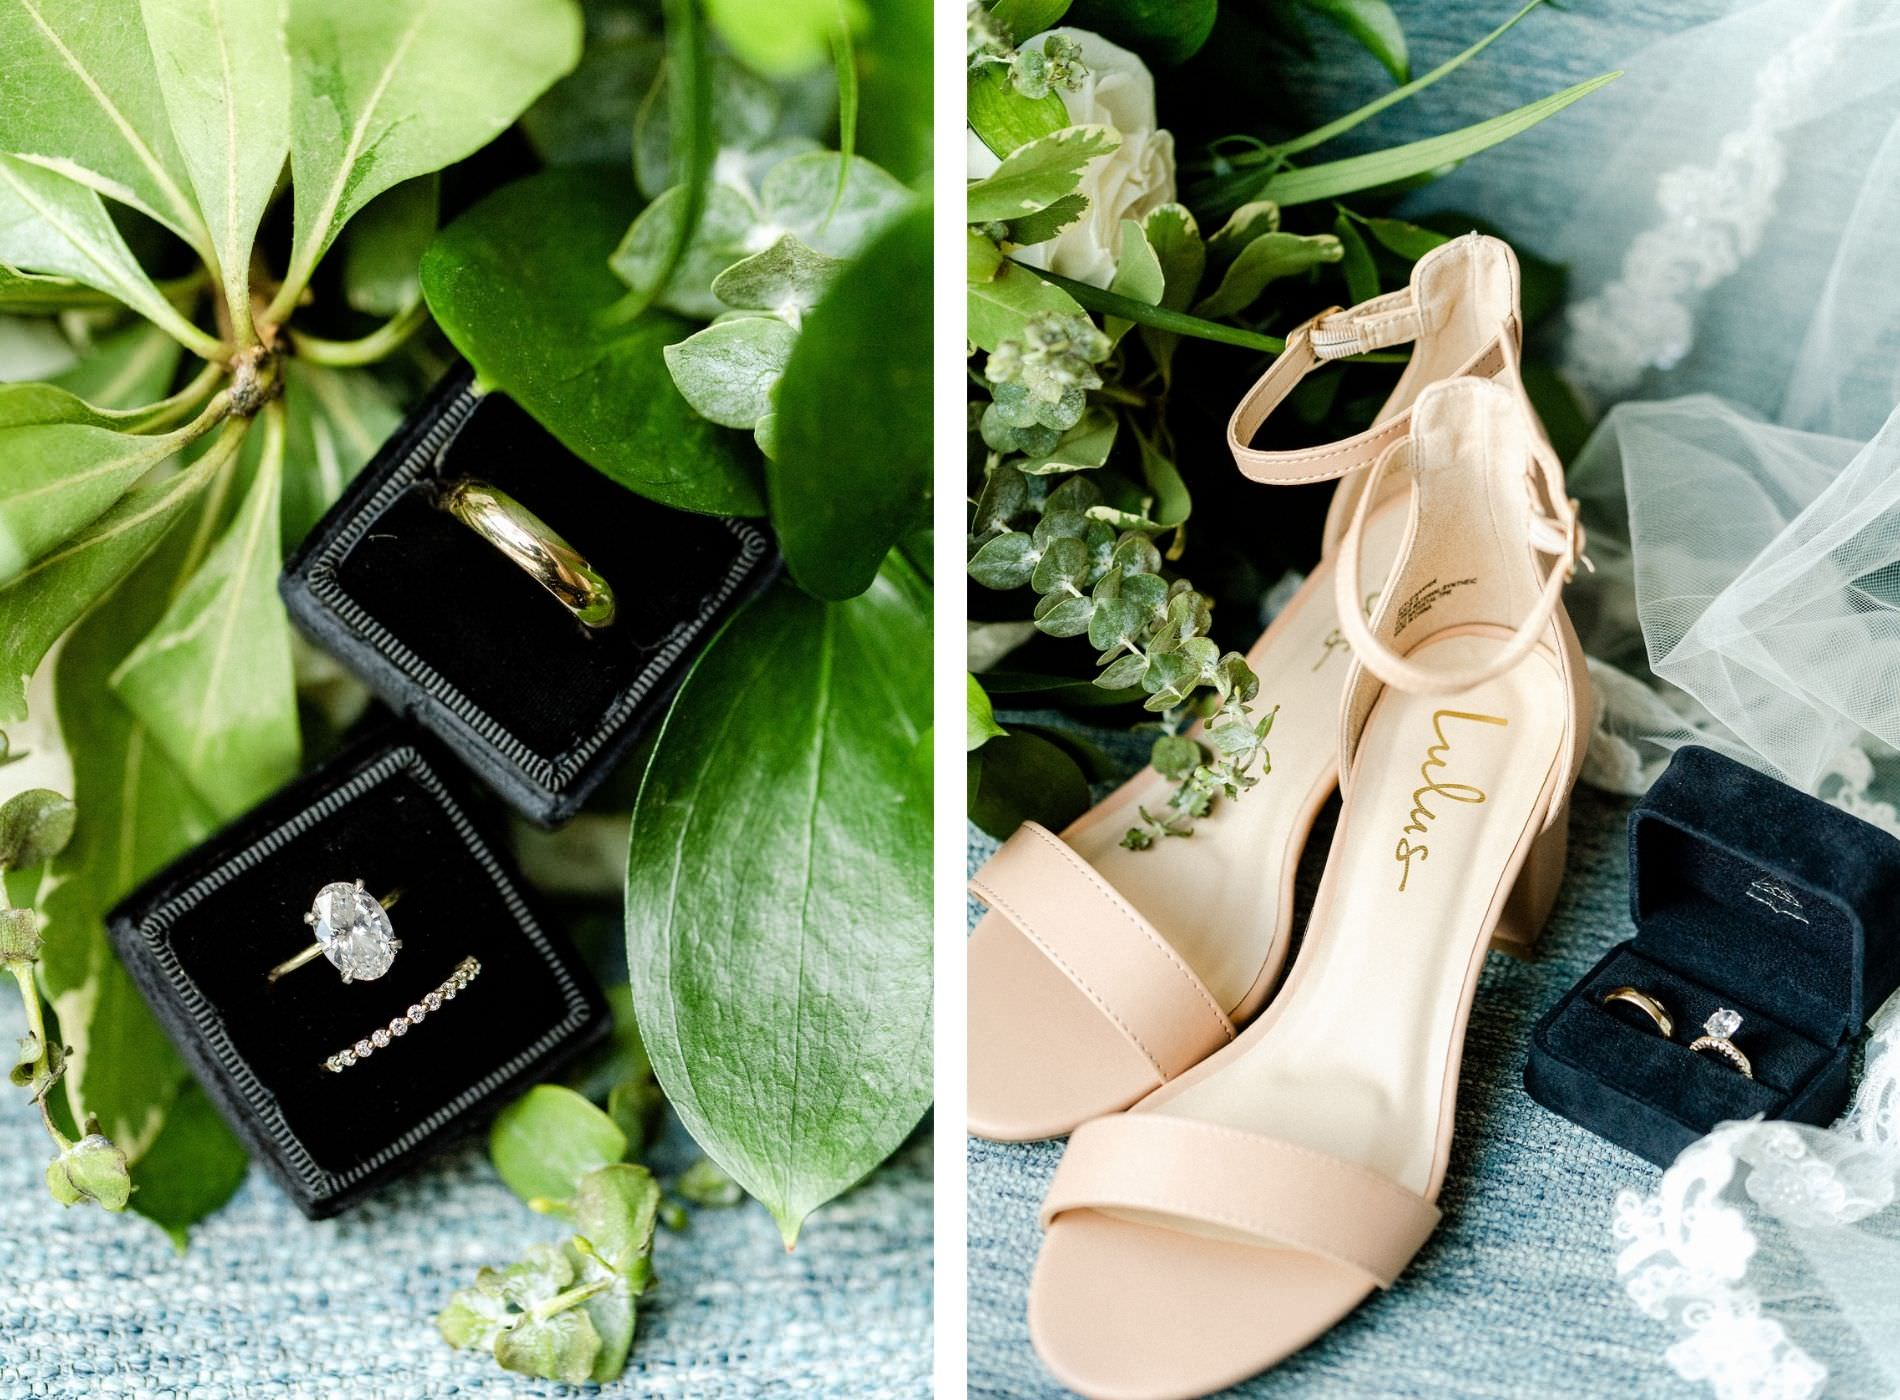 Neutral Greenery Tampa Wedding Accessories Photo Shot | Lulu's Champagne Bridal Heels Shoes | Wedding Ring Shot in Black Velvet Box with Greenery Bouquet | Oval Solitaire Diamond Engagement Ring with Channel Set Diamond Band and Yellow Gold Men's Wedding Band